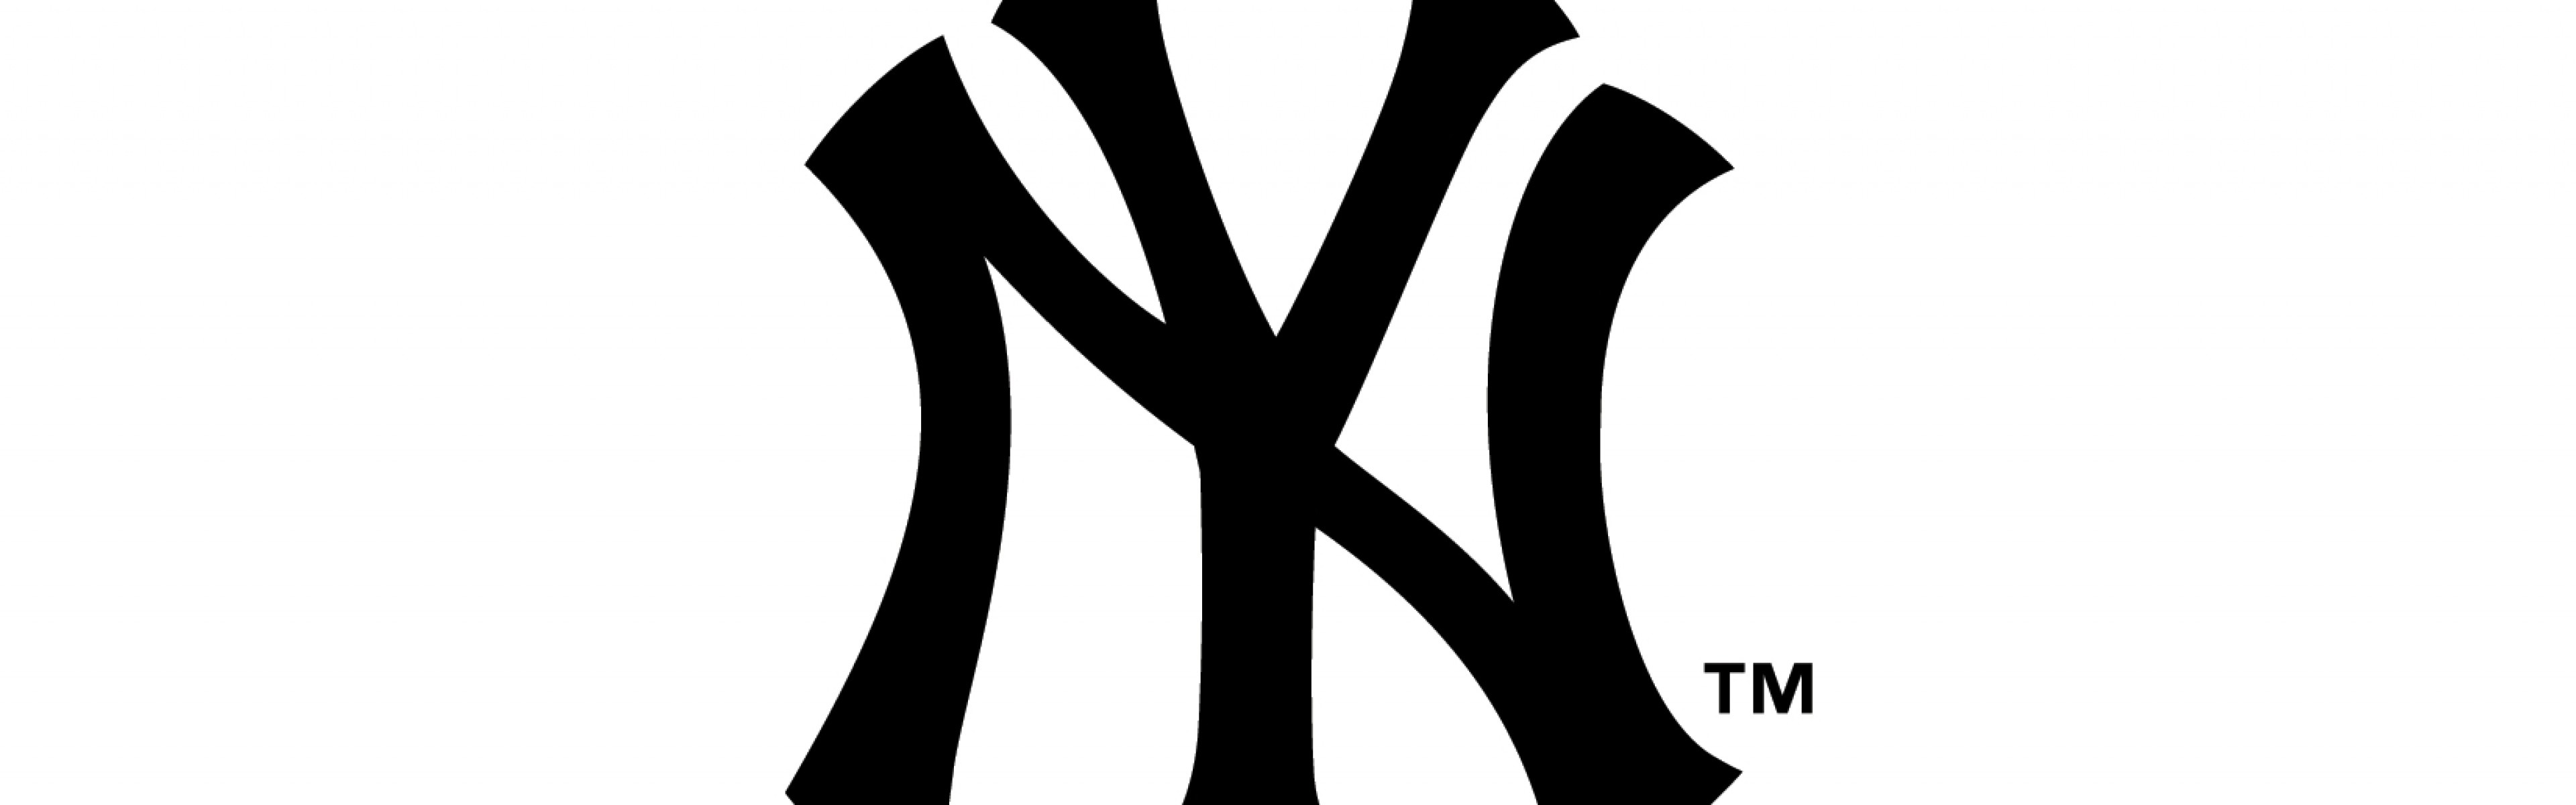 new york yankees, logo, famous brand Dual Wide HD Background